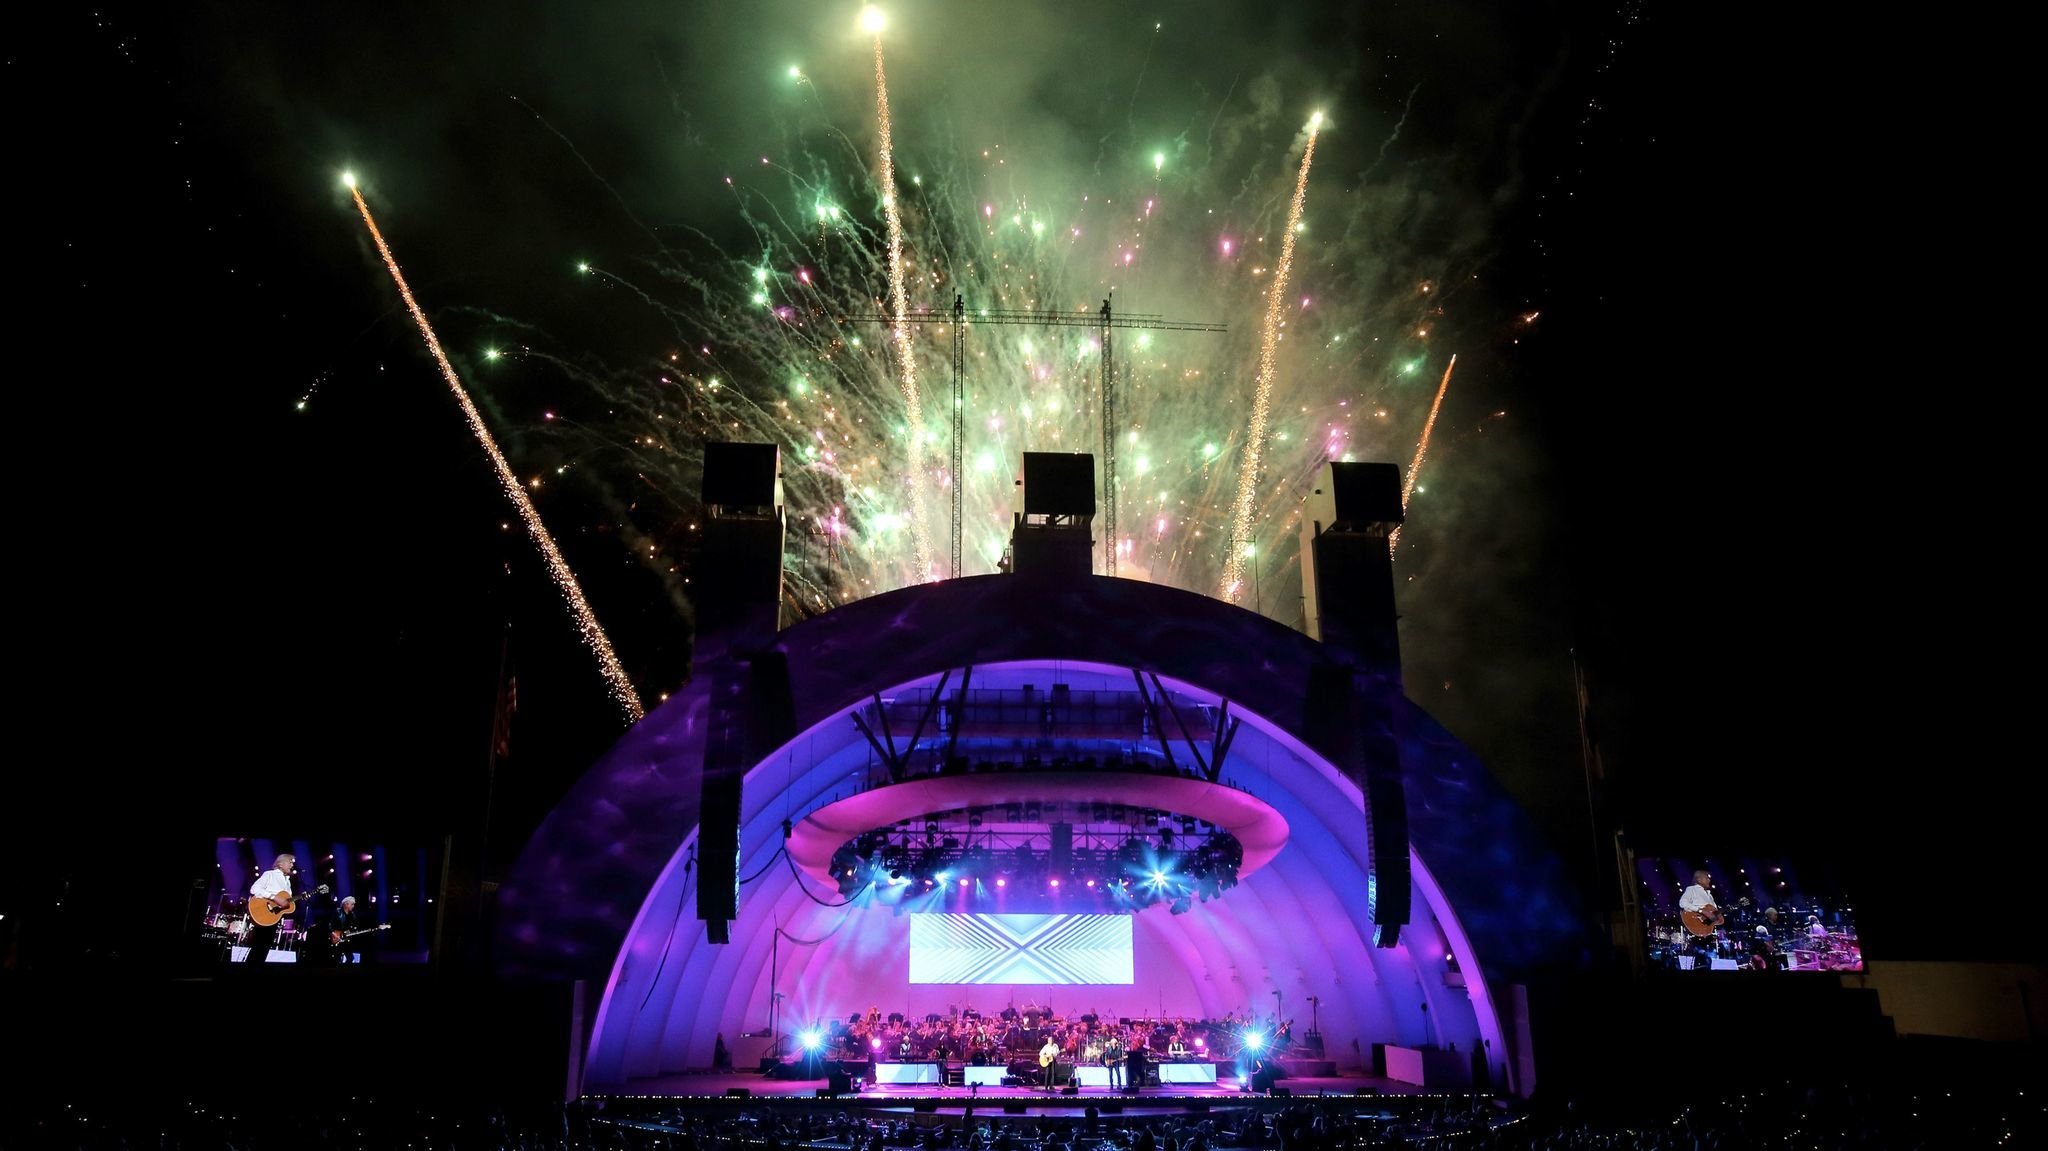 Opening night at the Hollywood Bowl offers the sounds of the Moody Blues and the Hollywood Bowl Orchestra, a fireworks display and more.